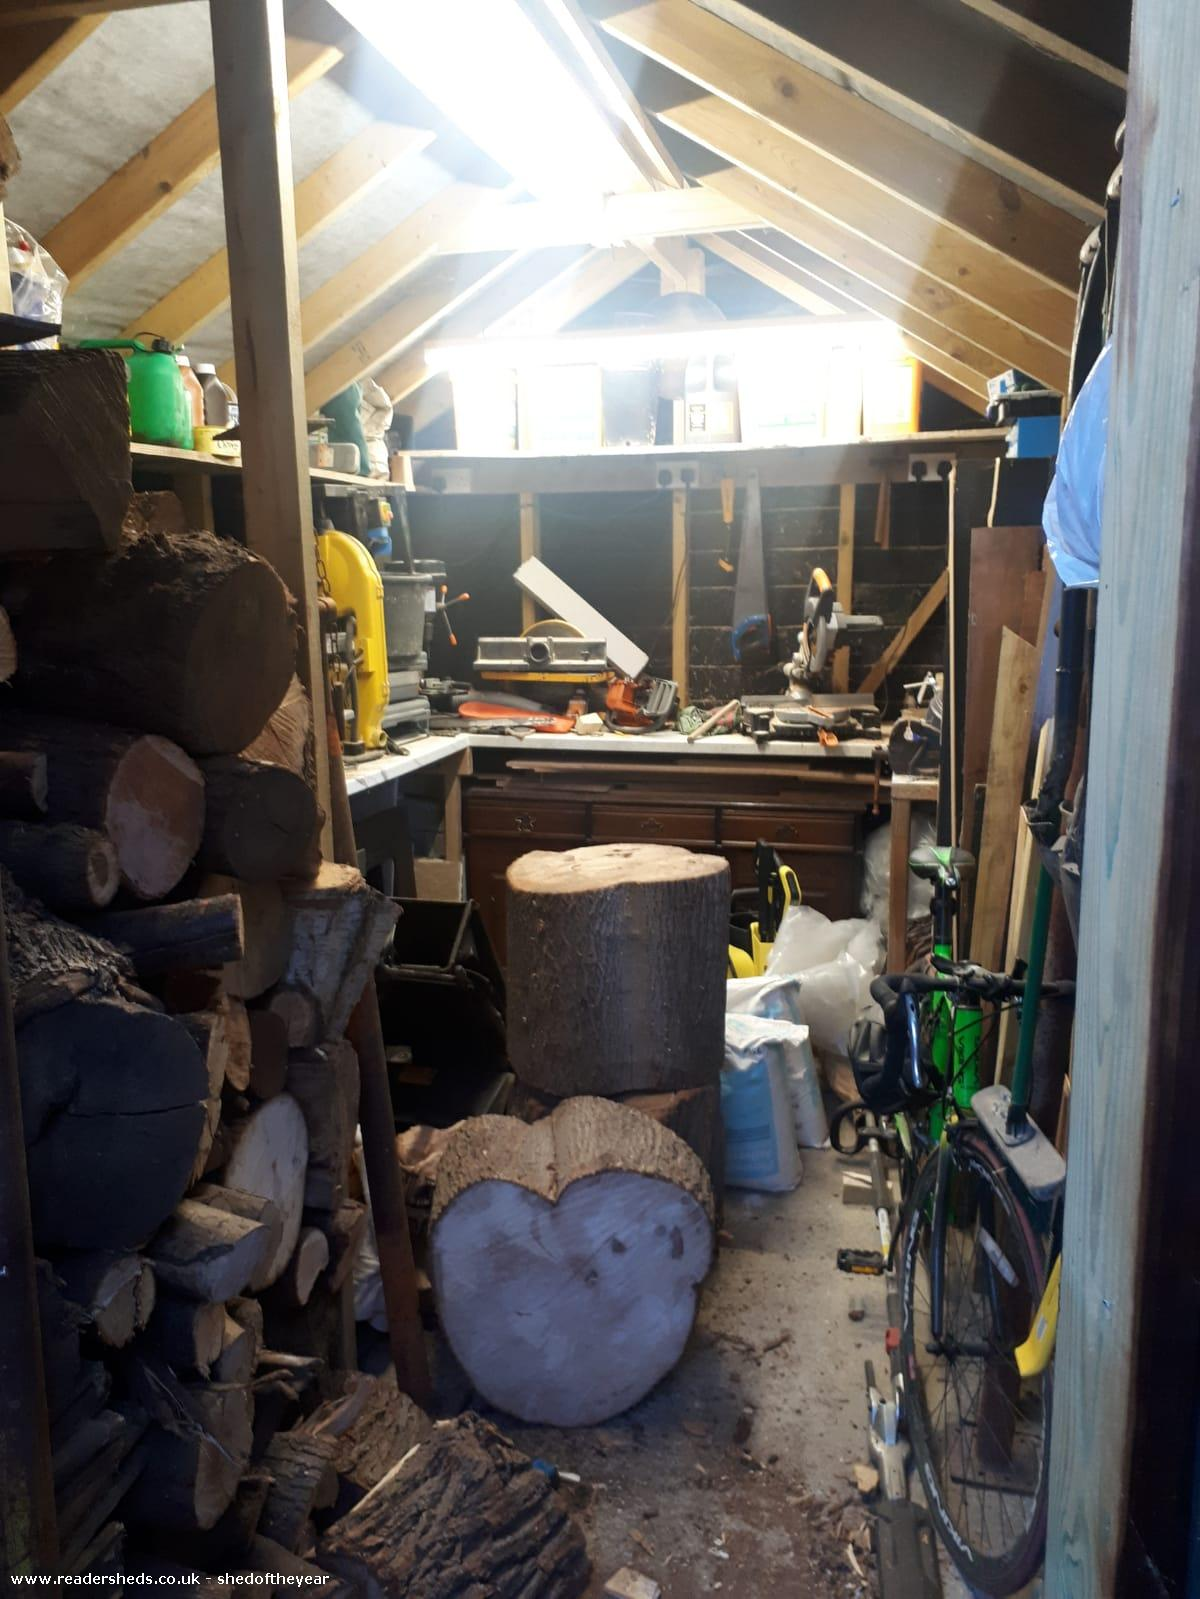 Photo of Barn shed, entry to Shed of the year-Inside from doorway